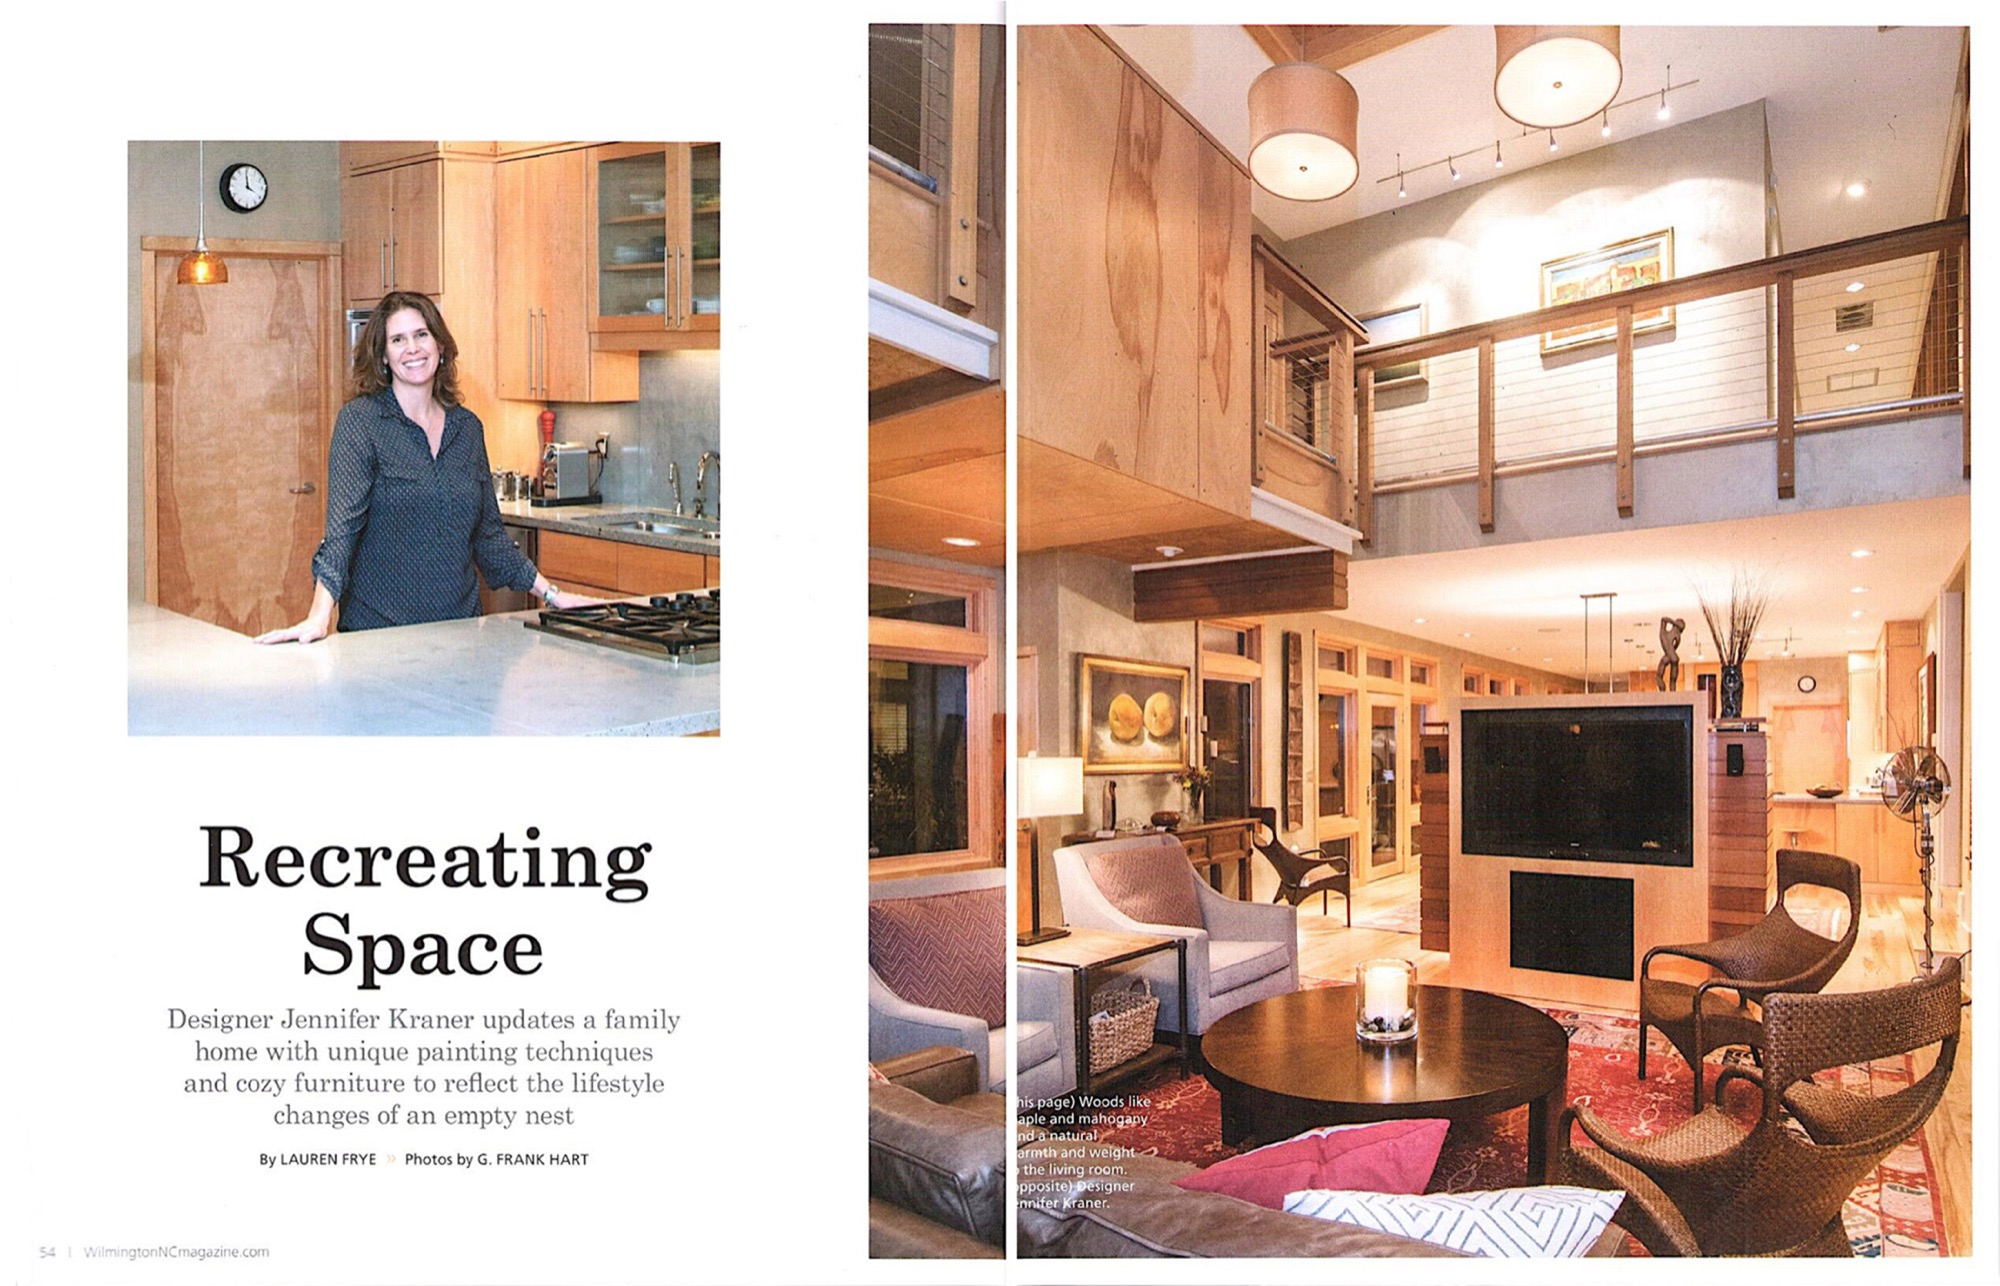 Wilmington Magazine, January/February 2014